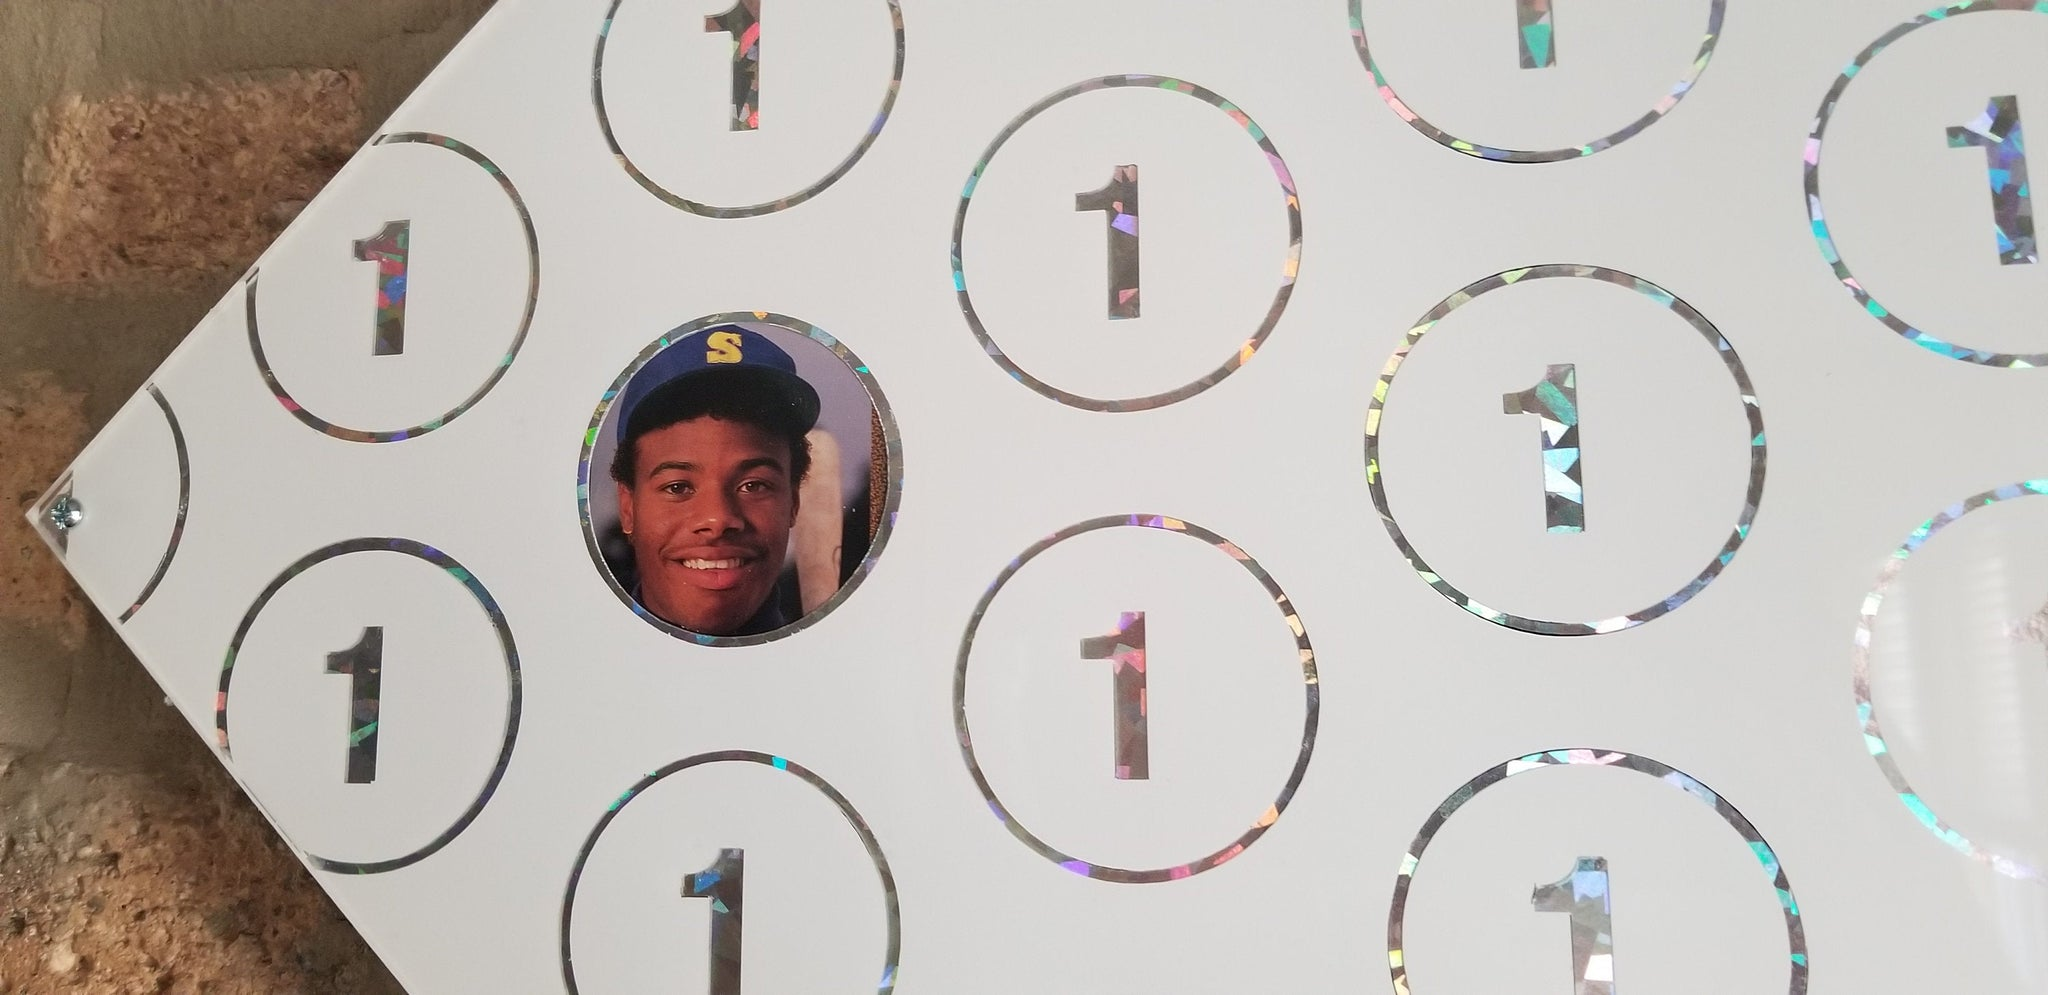 Baseball card art by Matthew Lee Rosen (aka Matthew Rosen) - Overproduction ('89 Upper Deck Card #1: Griffey Jr.)